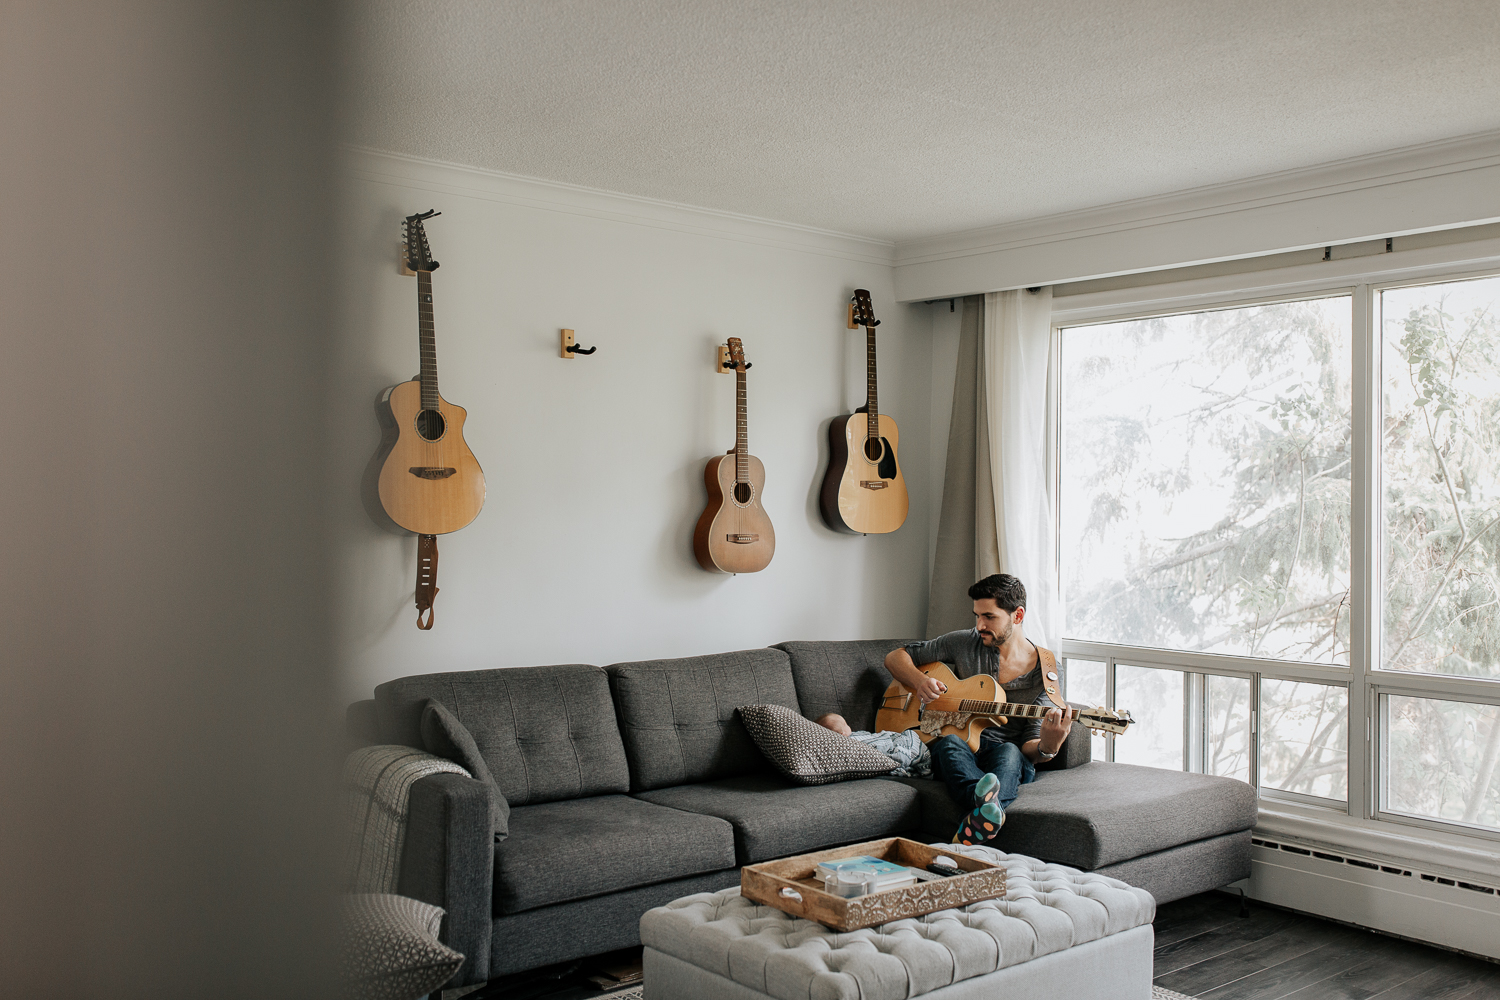 new dad sitting on living room couch playing guitar and singing to 2 week old baby boy lying against cushions - Newmarket In-Home Photography